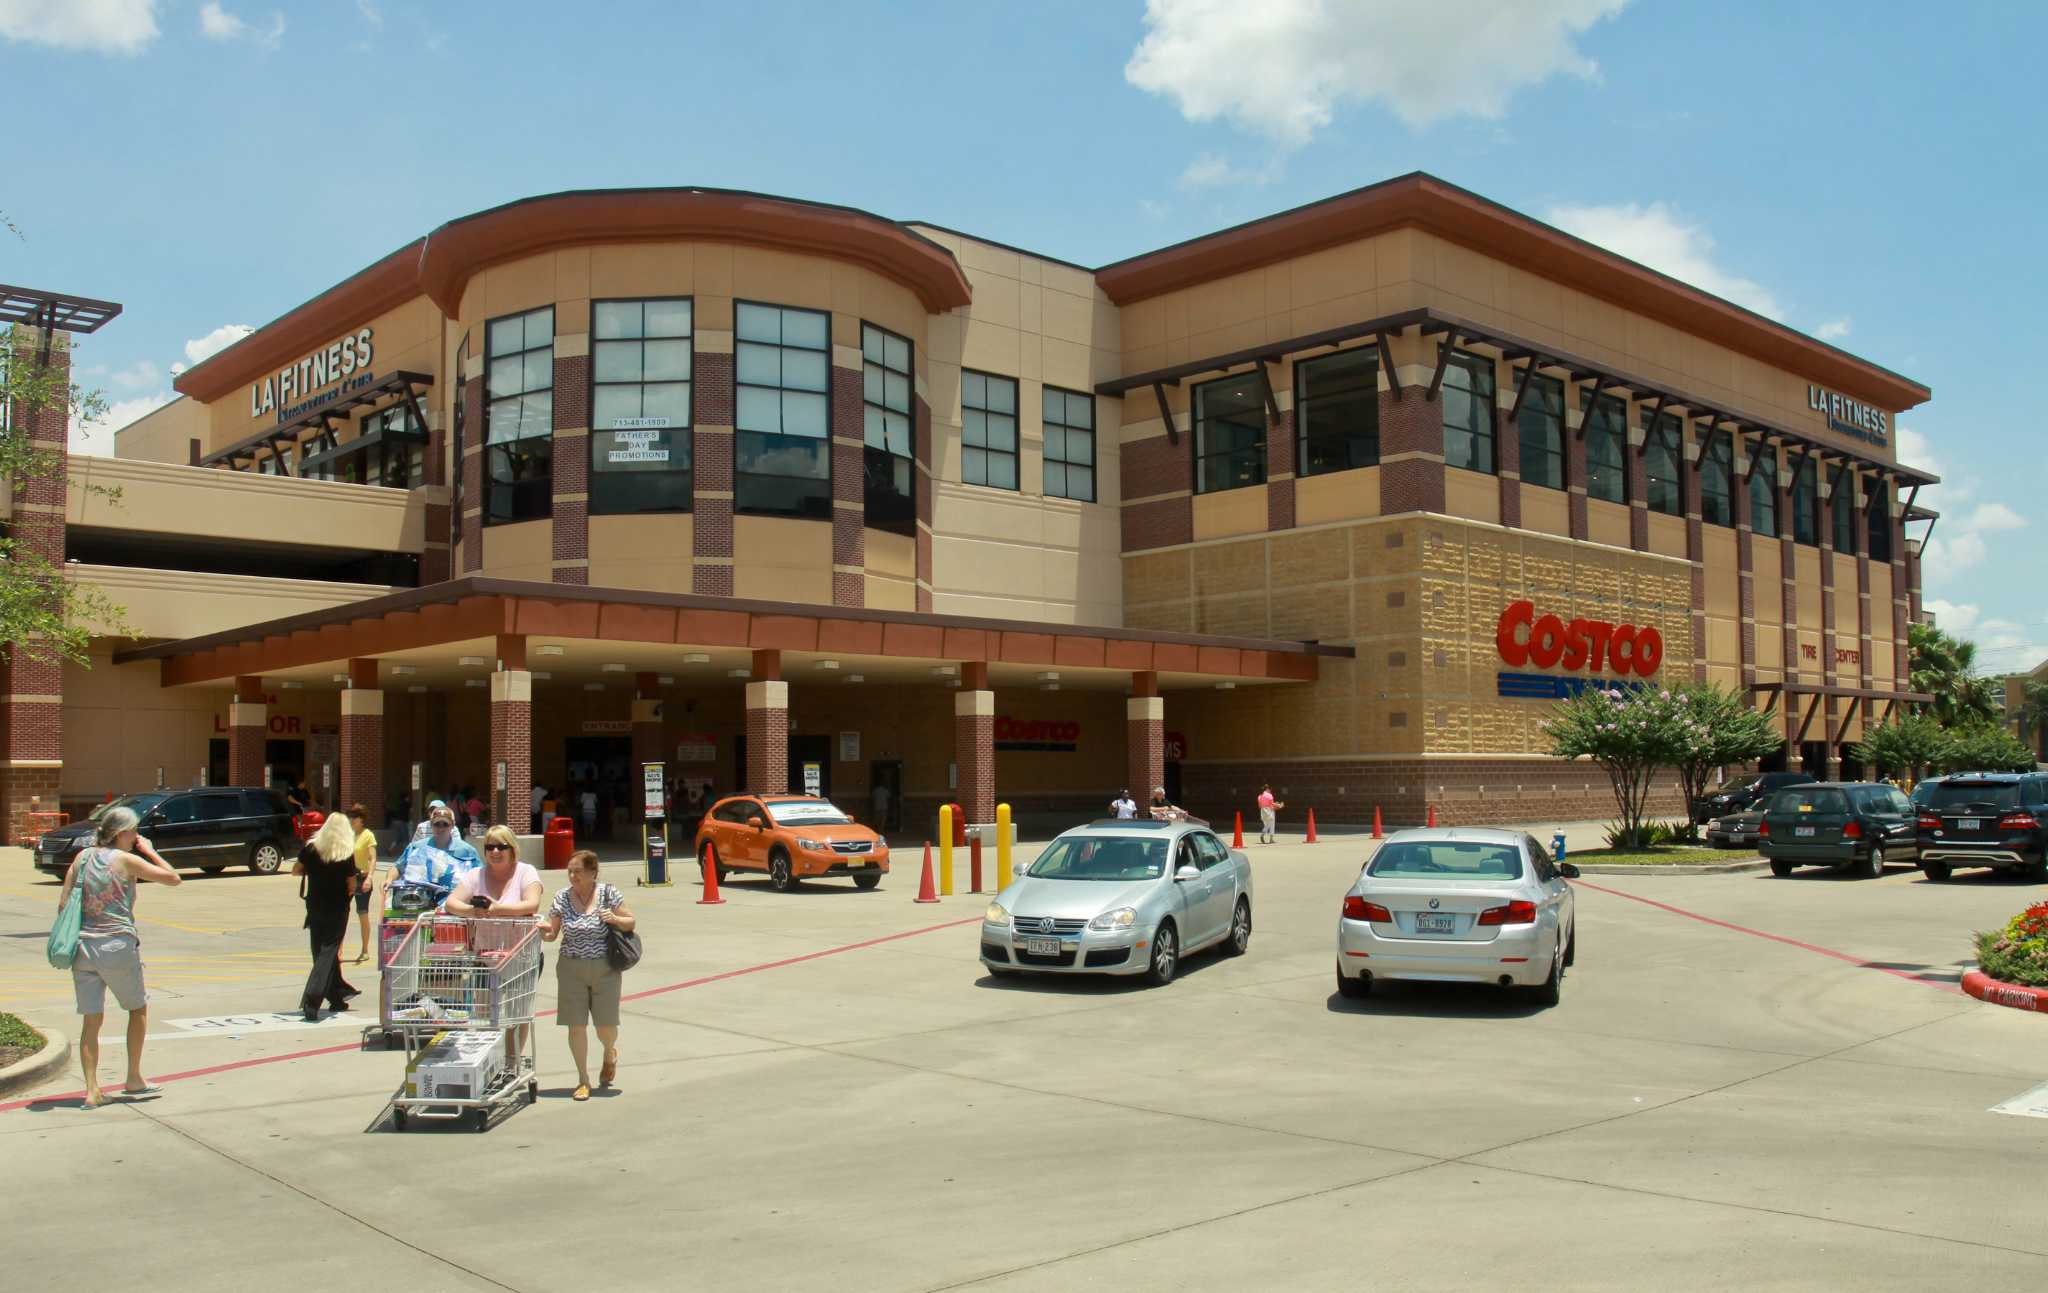 Greenway Commons is sold to LaSalle Investment Management